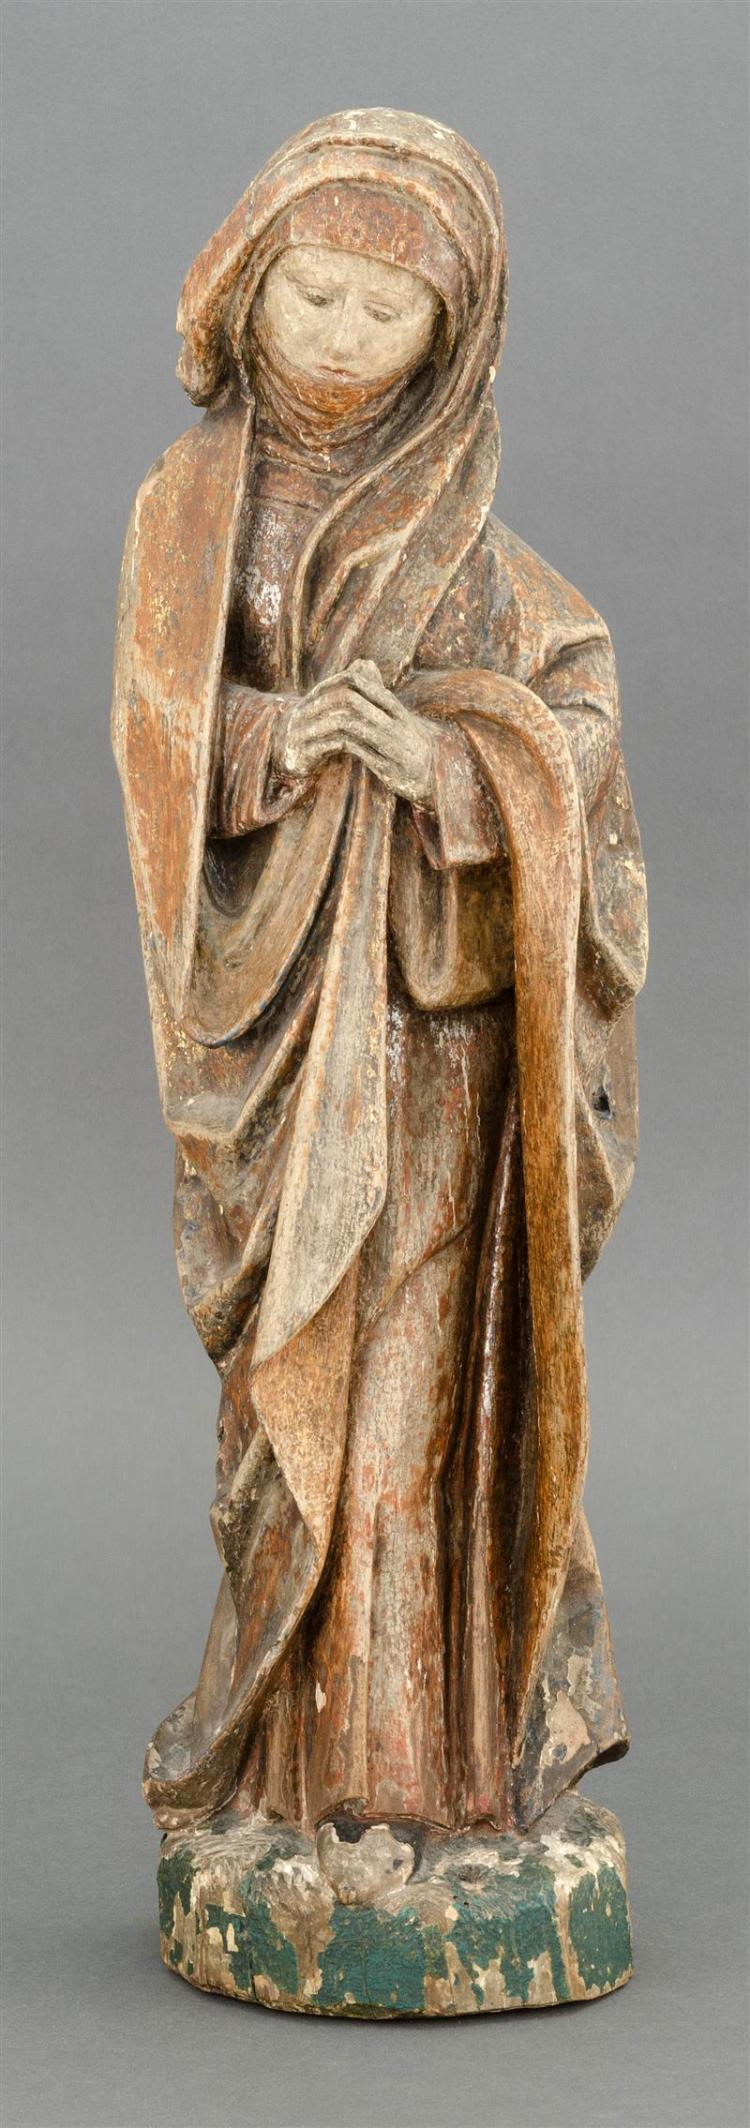 CARVED WOOD FIGURE OF ST. ANNE In standing position with red robes highlighted in silver and gold. Height 21.25